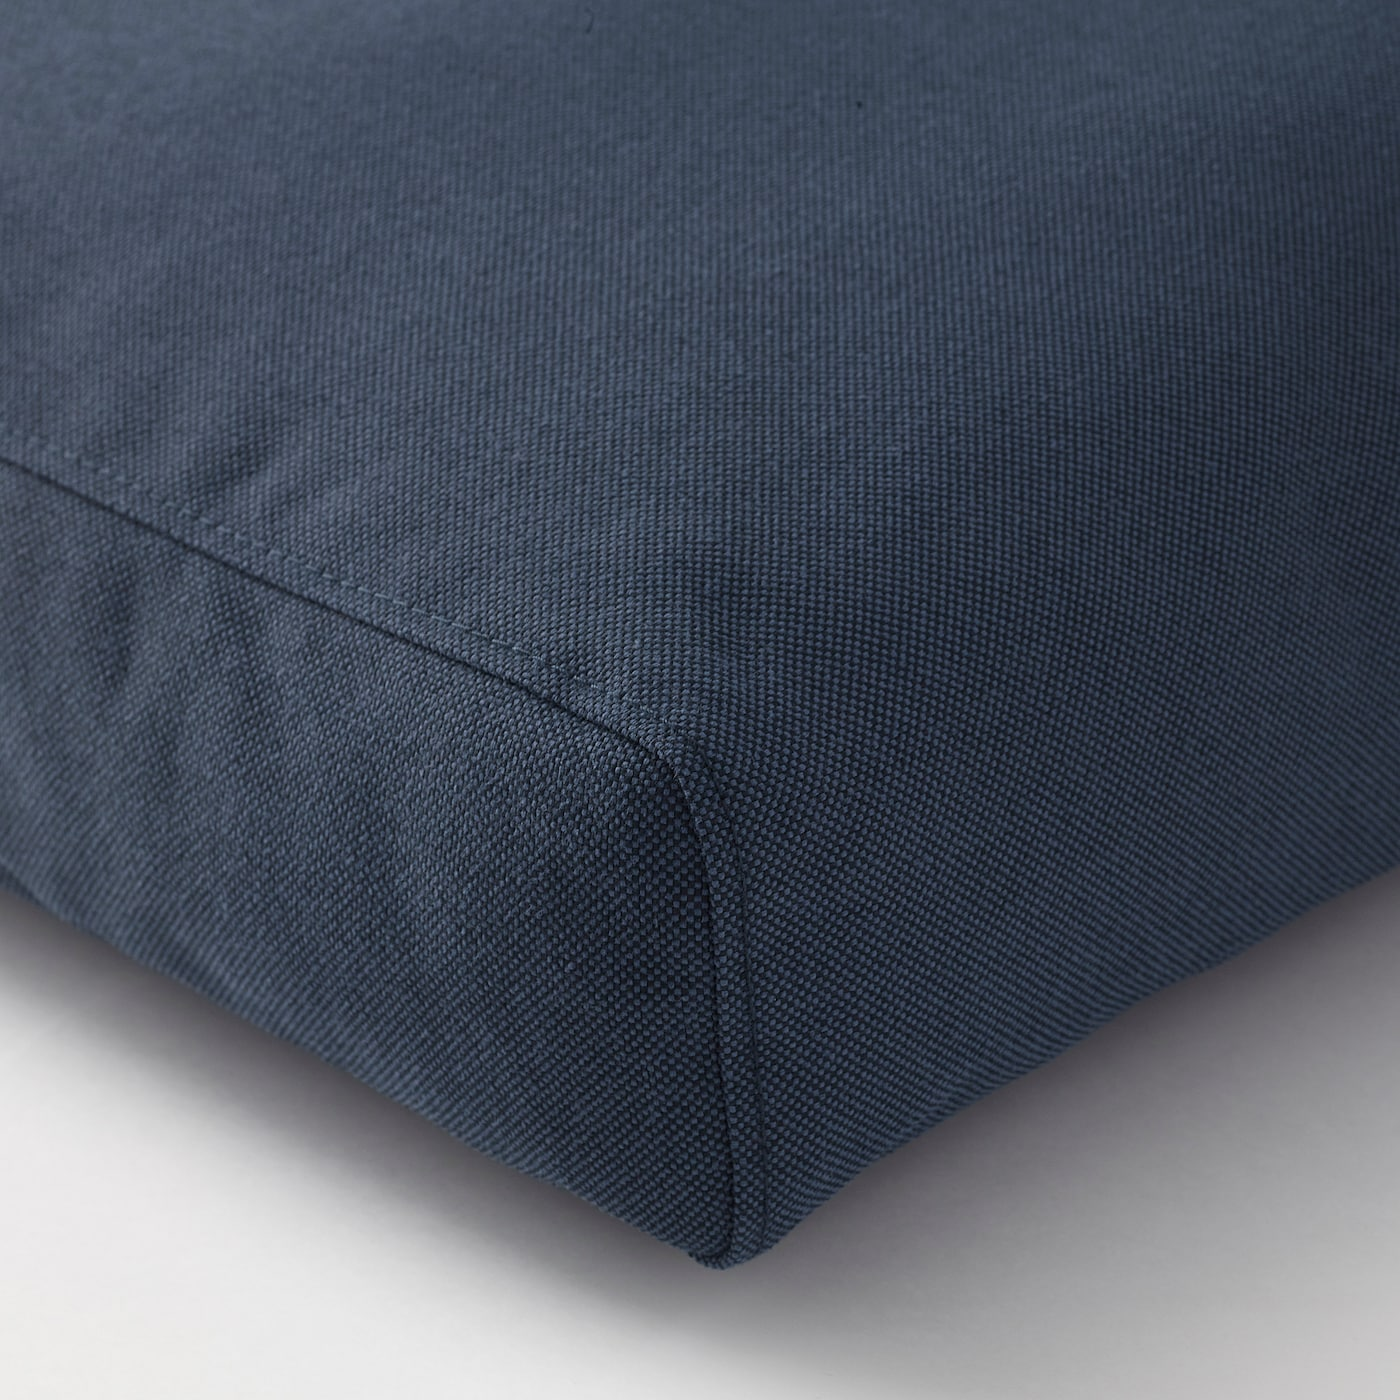 FRÖSÖN/DUVHOLMEN Back cushion, outdoor, blue, 62x44 cm